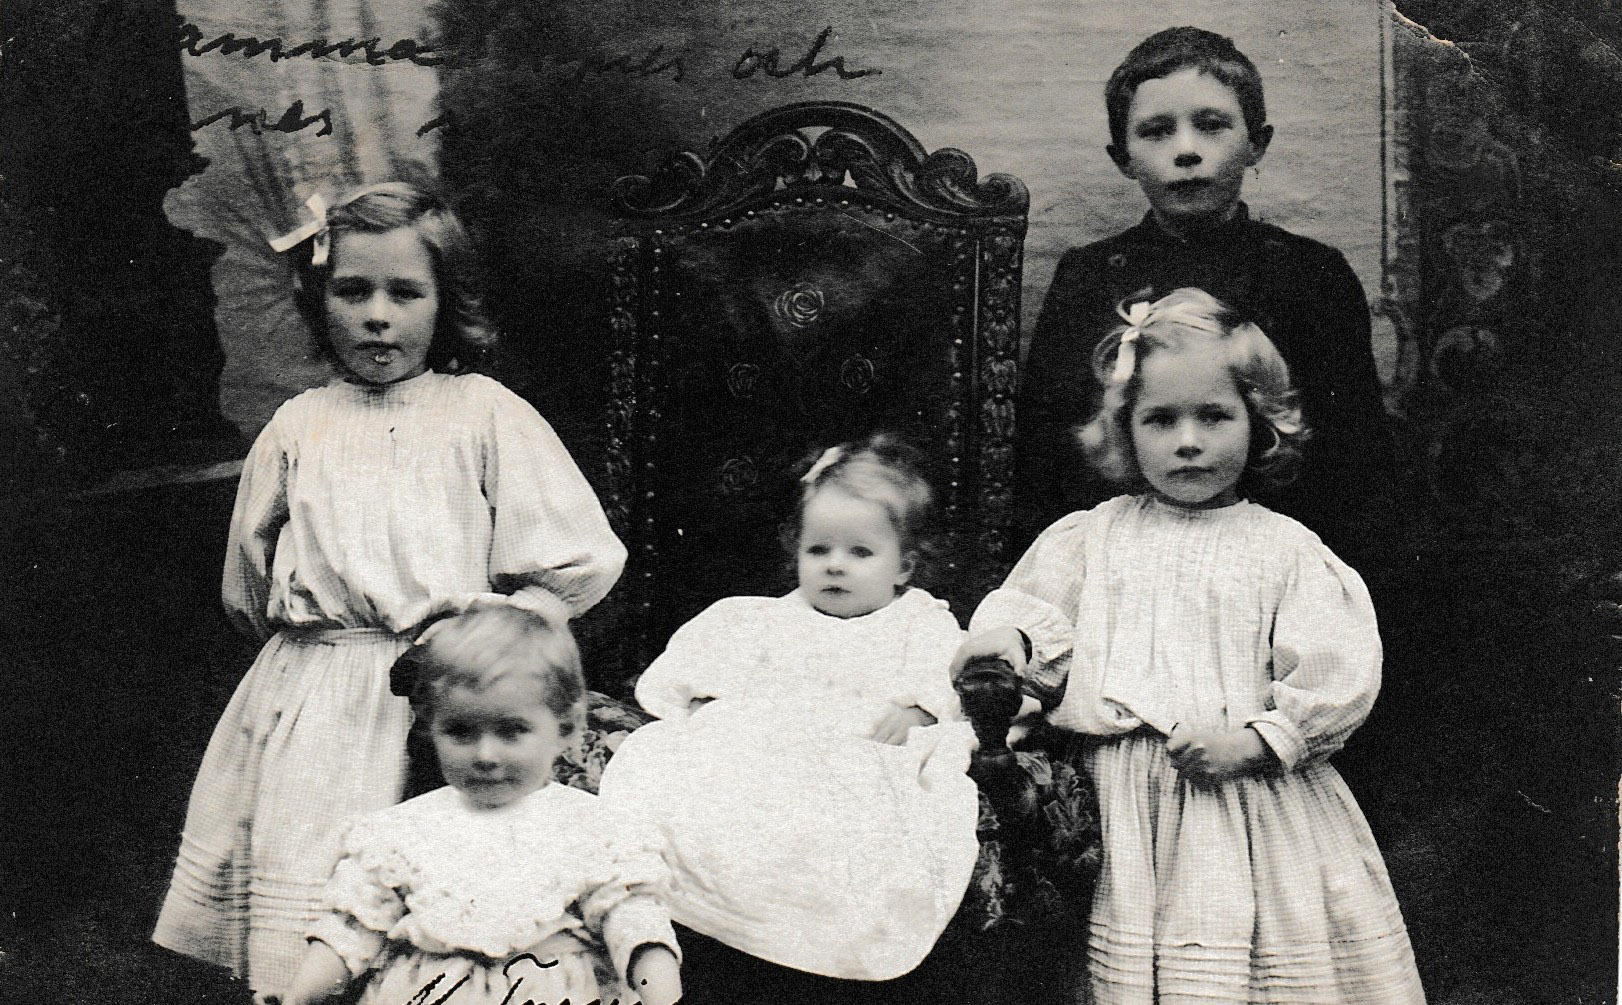 Agnes Melvaer,  daughter of Thormod,  sitting in the chair,  with siblings,  Ottar, Dagny, Magnhild, Eldrid